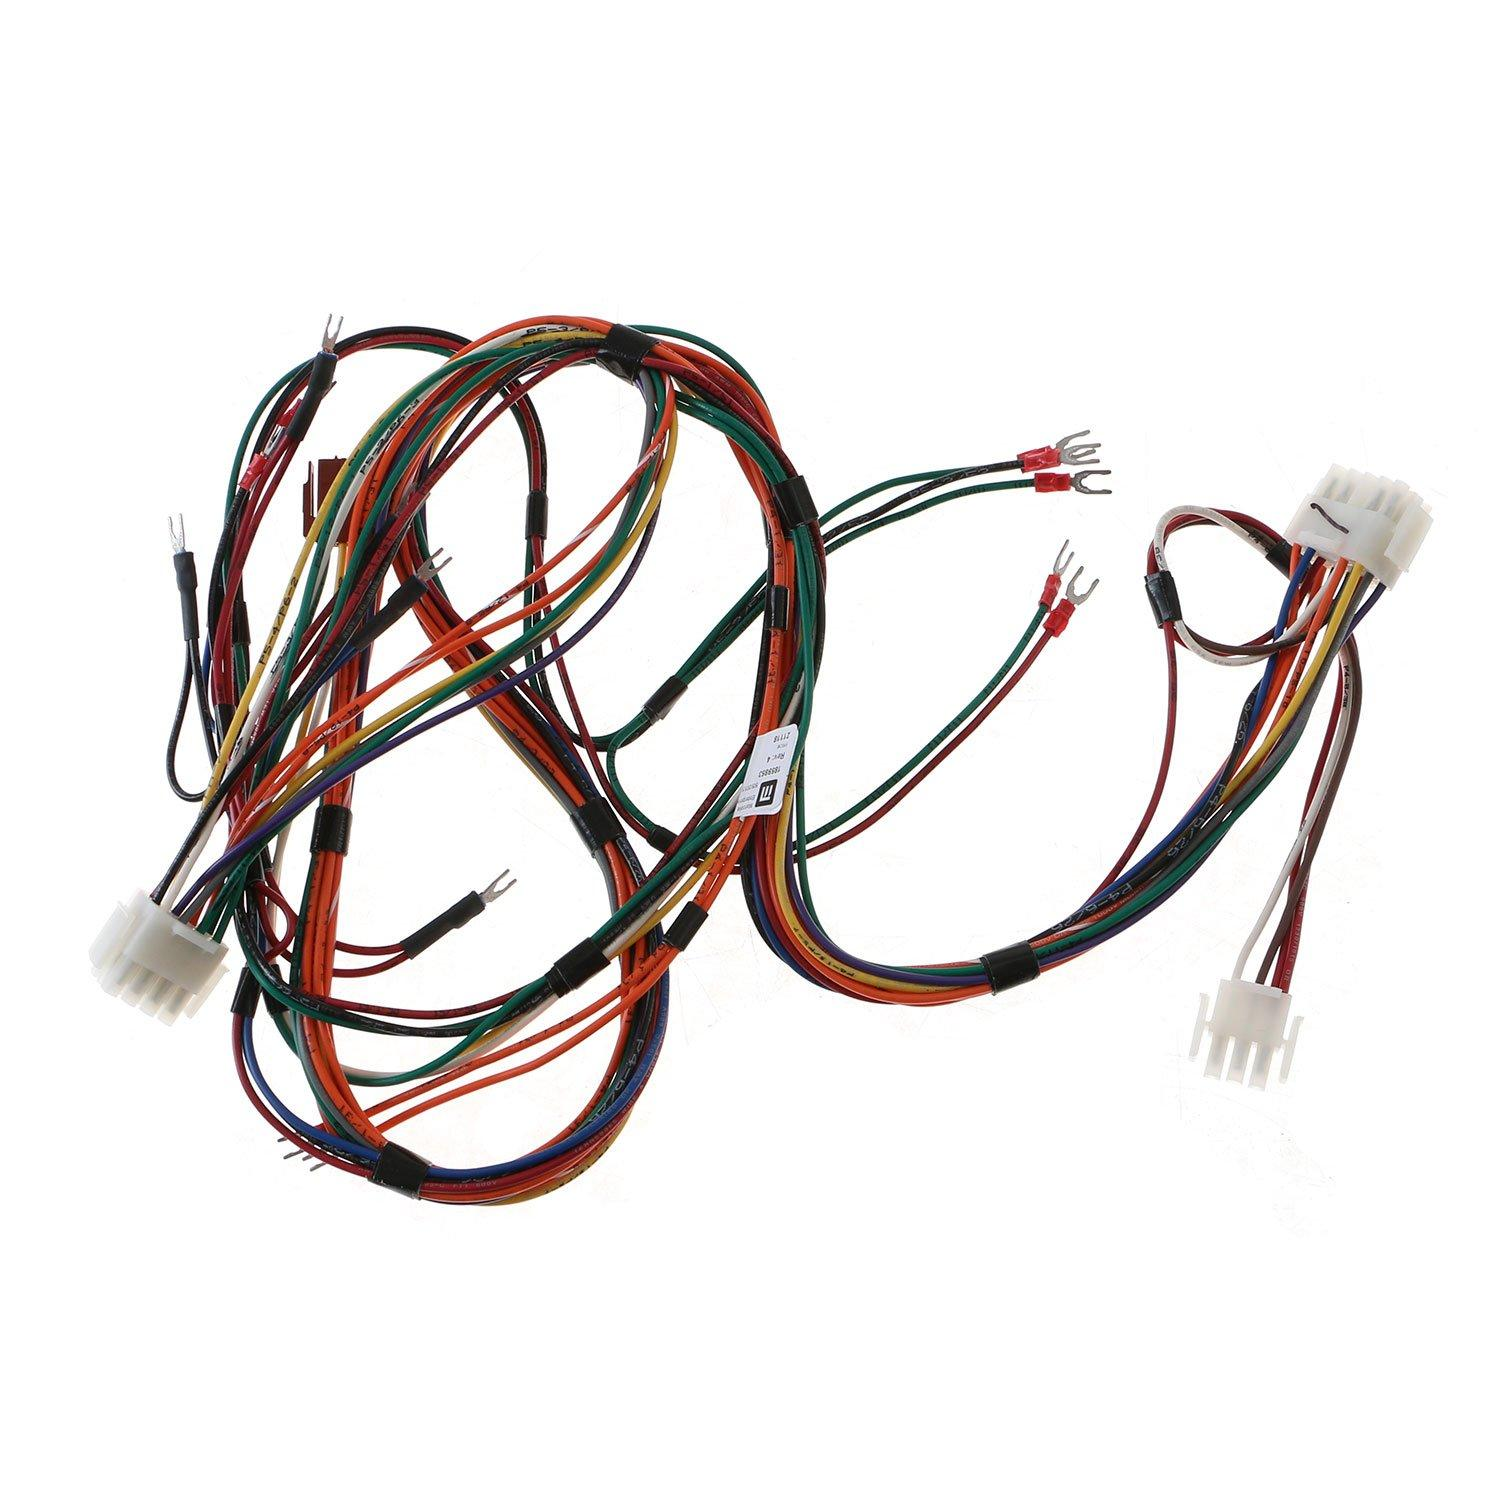 GARLAND CONTROL HARNESS